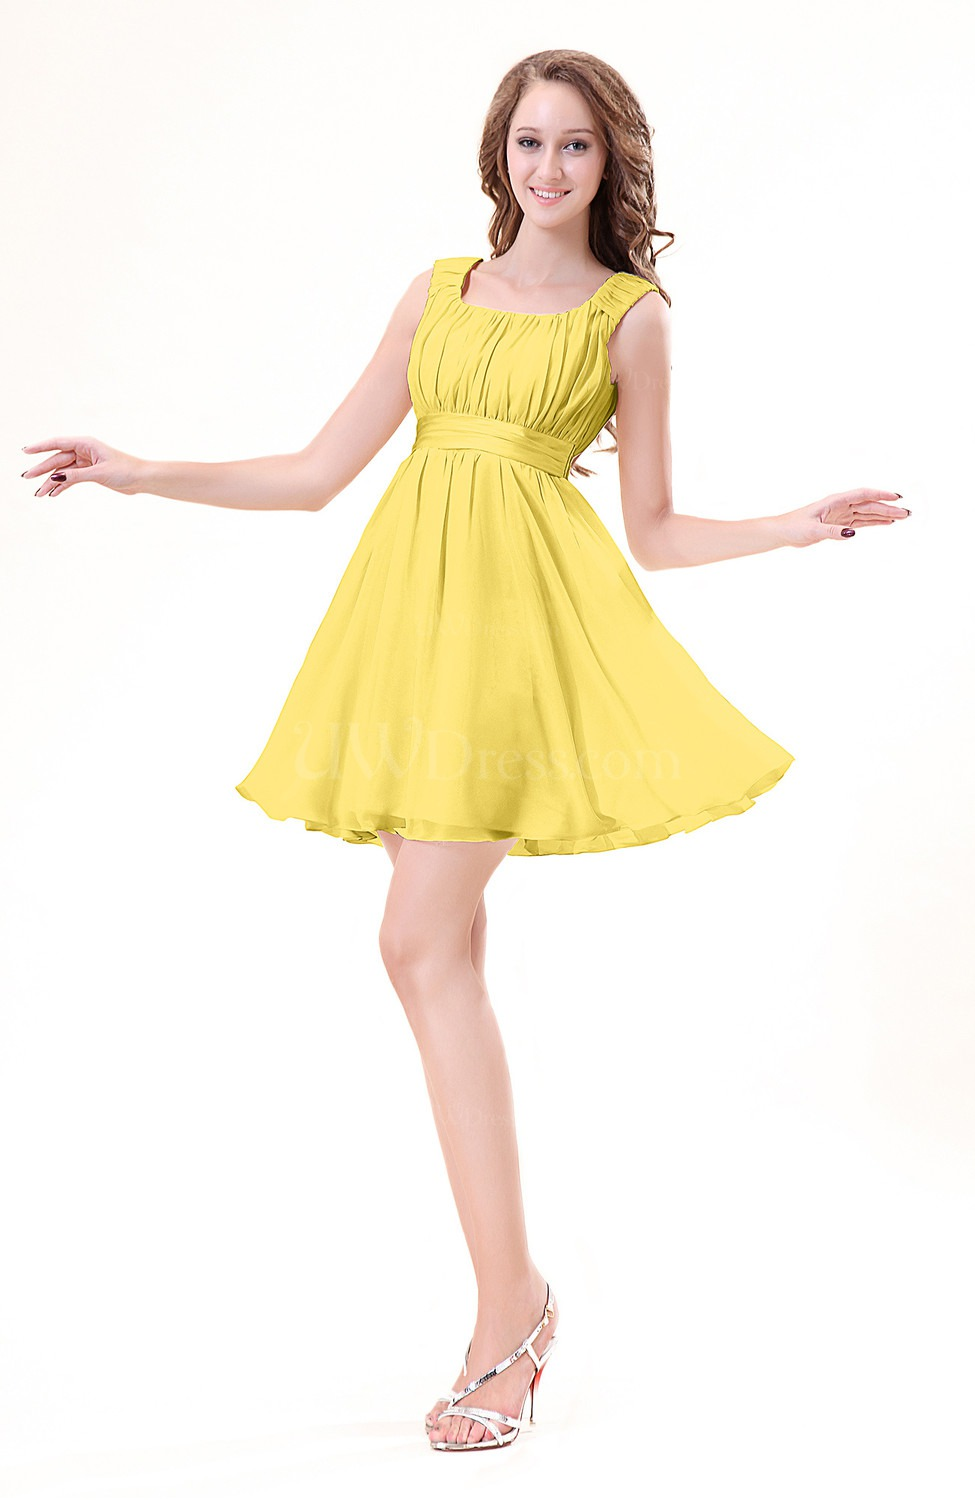 yellow wedding guest dressescherry marry cherry marry With yellow wedding guest dress